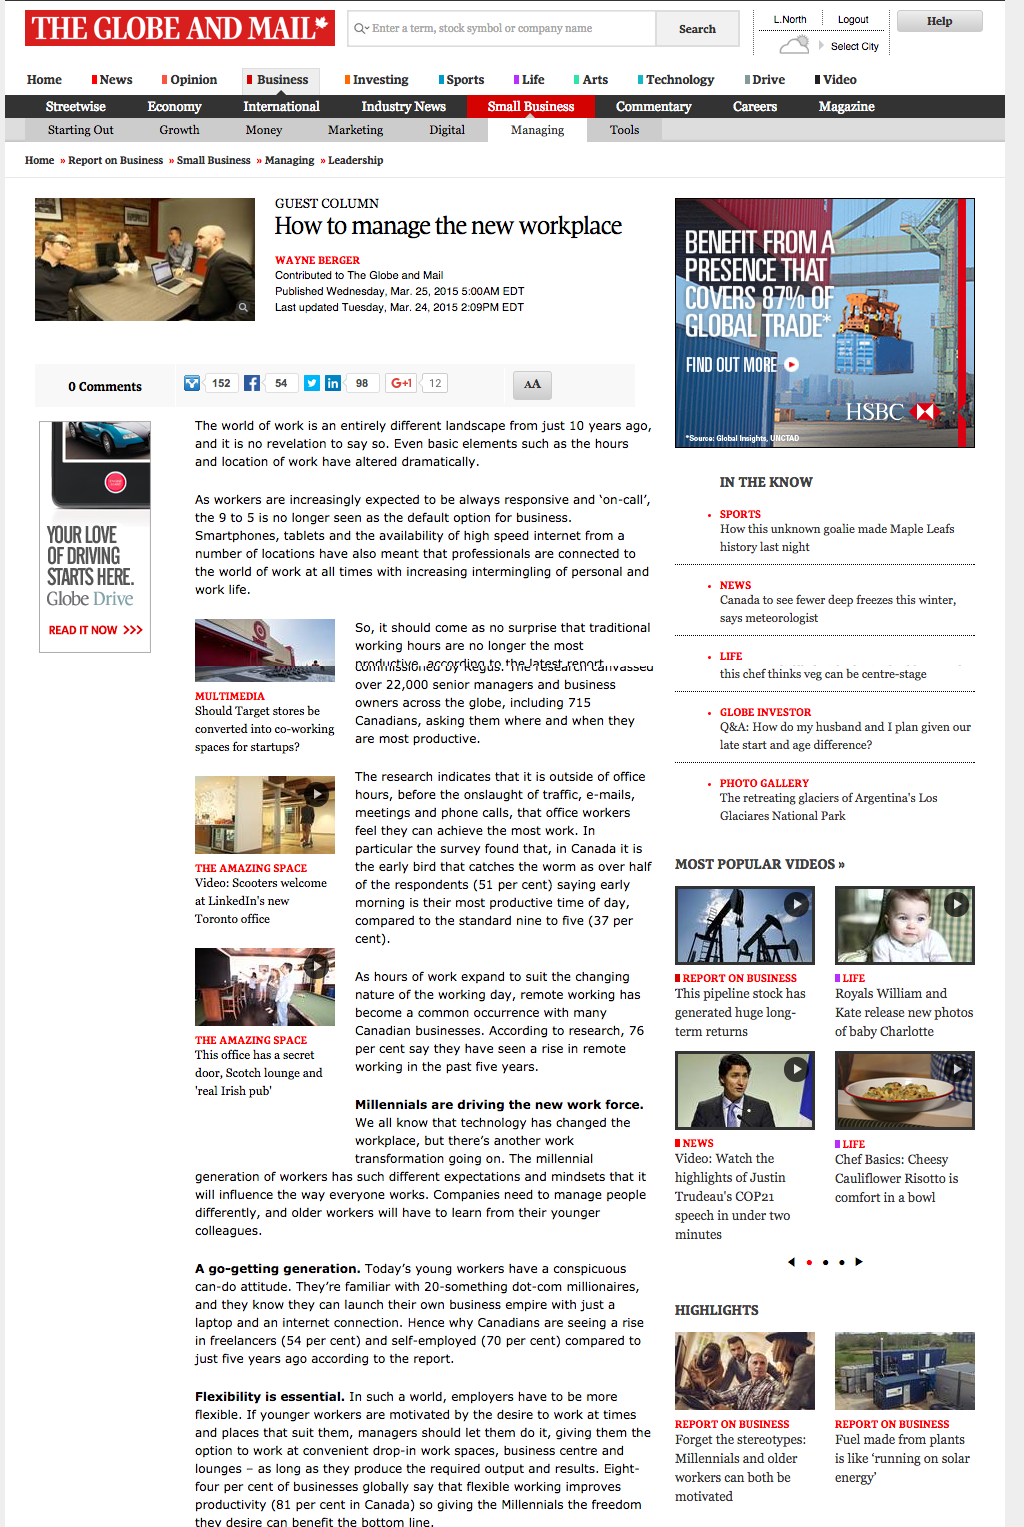 Regus Guest Column in The Globe and Mail